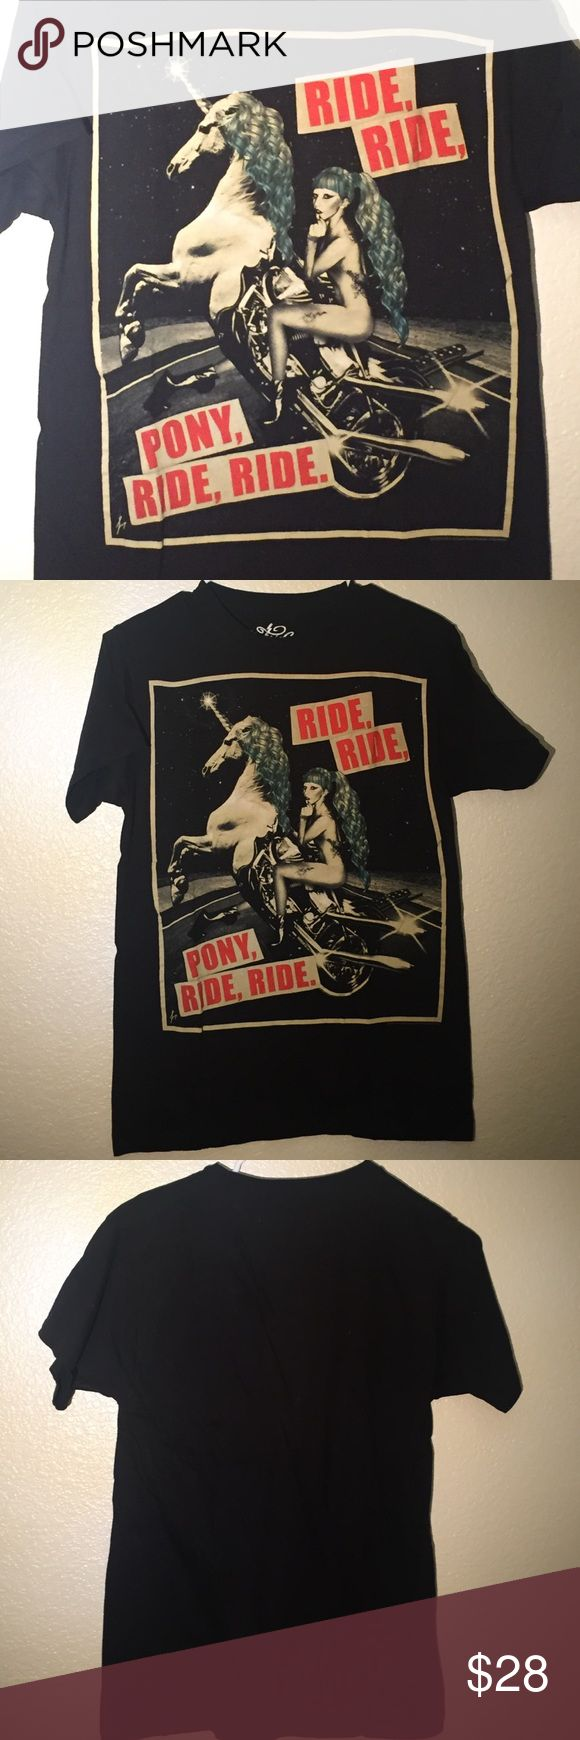 """Lady Gaga limited edition BTW ball t-shirt Rare limited edition Lady Gaga, Born This Way Ball Tour merchandise. Graphic of nude Gaga riding a unicorn with the lyrics """"Ride Ride Pony, Ride Ride"""" like new, only worn once Tops Tees - Short Sleeve"""